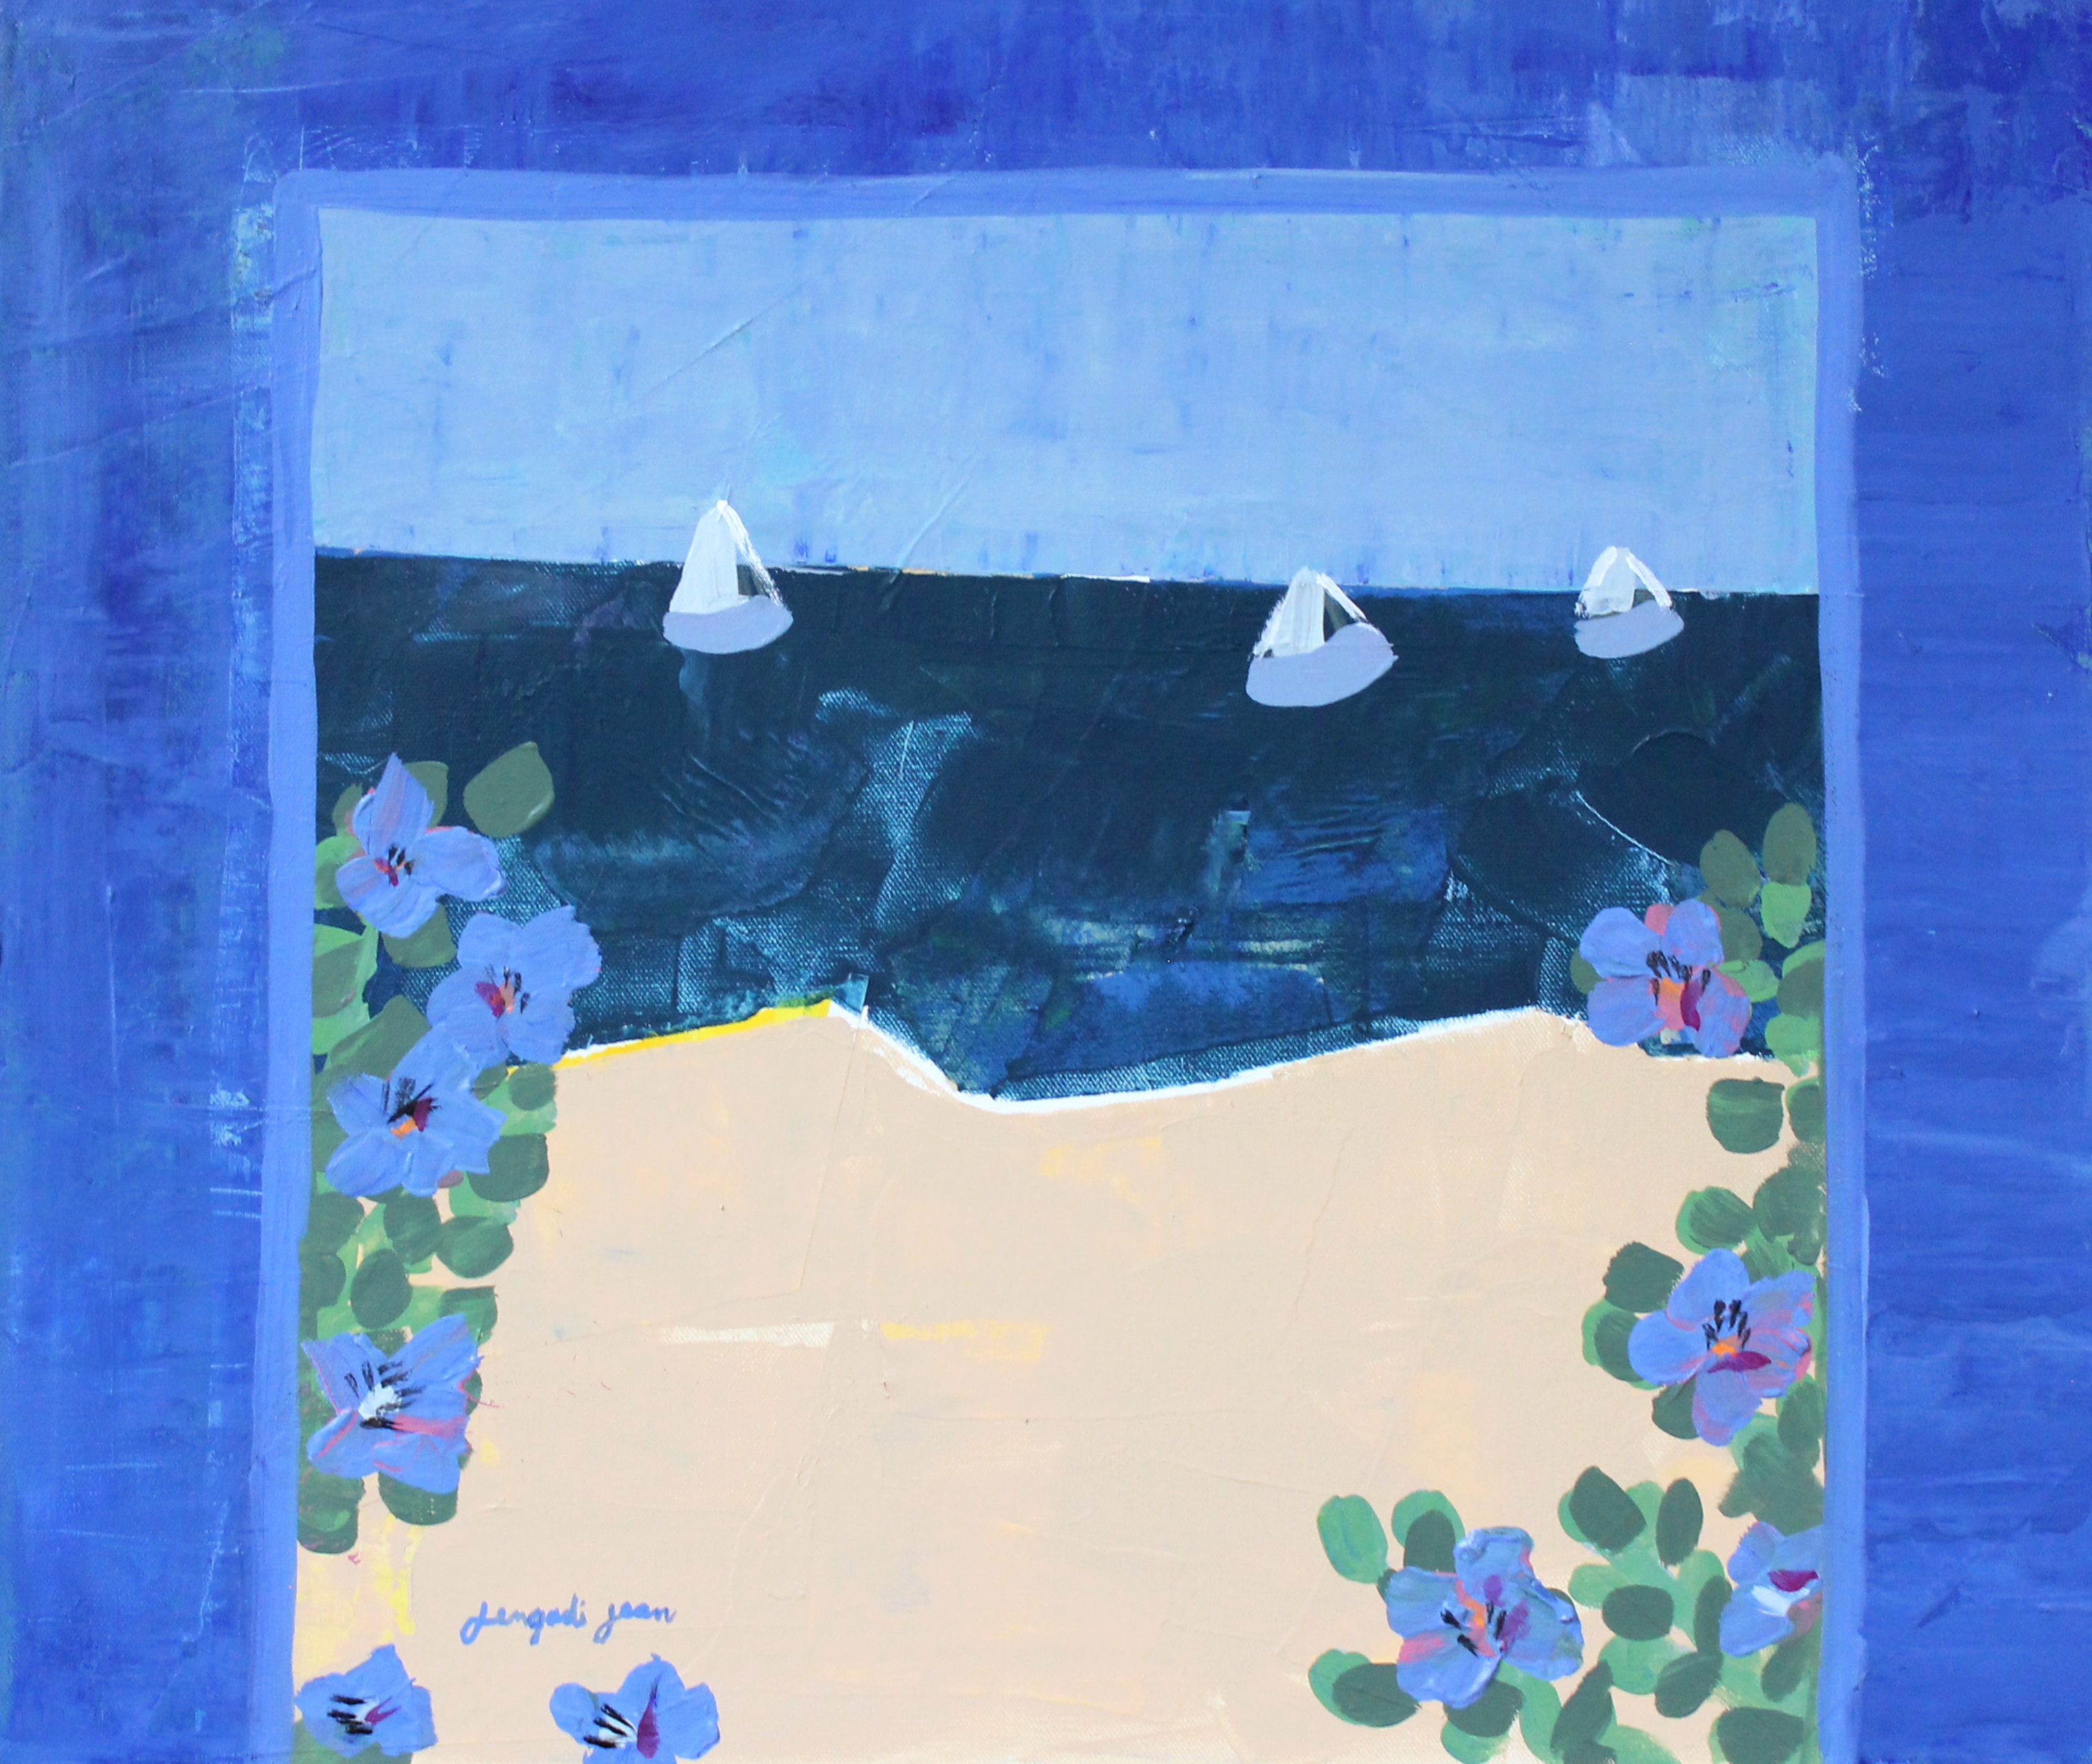 Blueberries by the Sea (20x24)